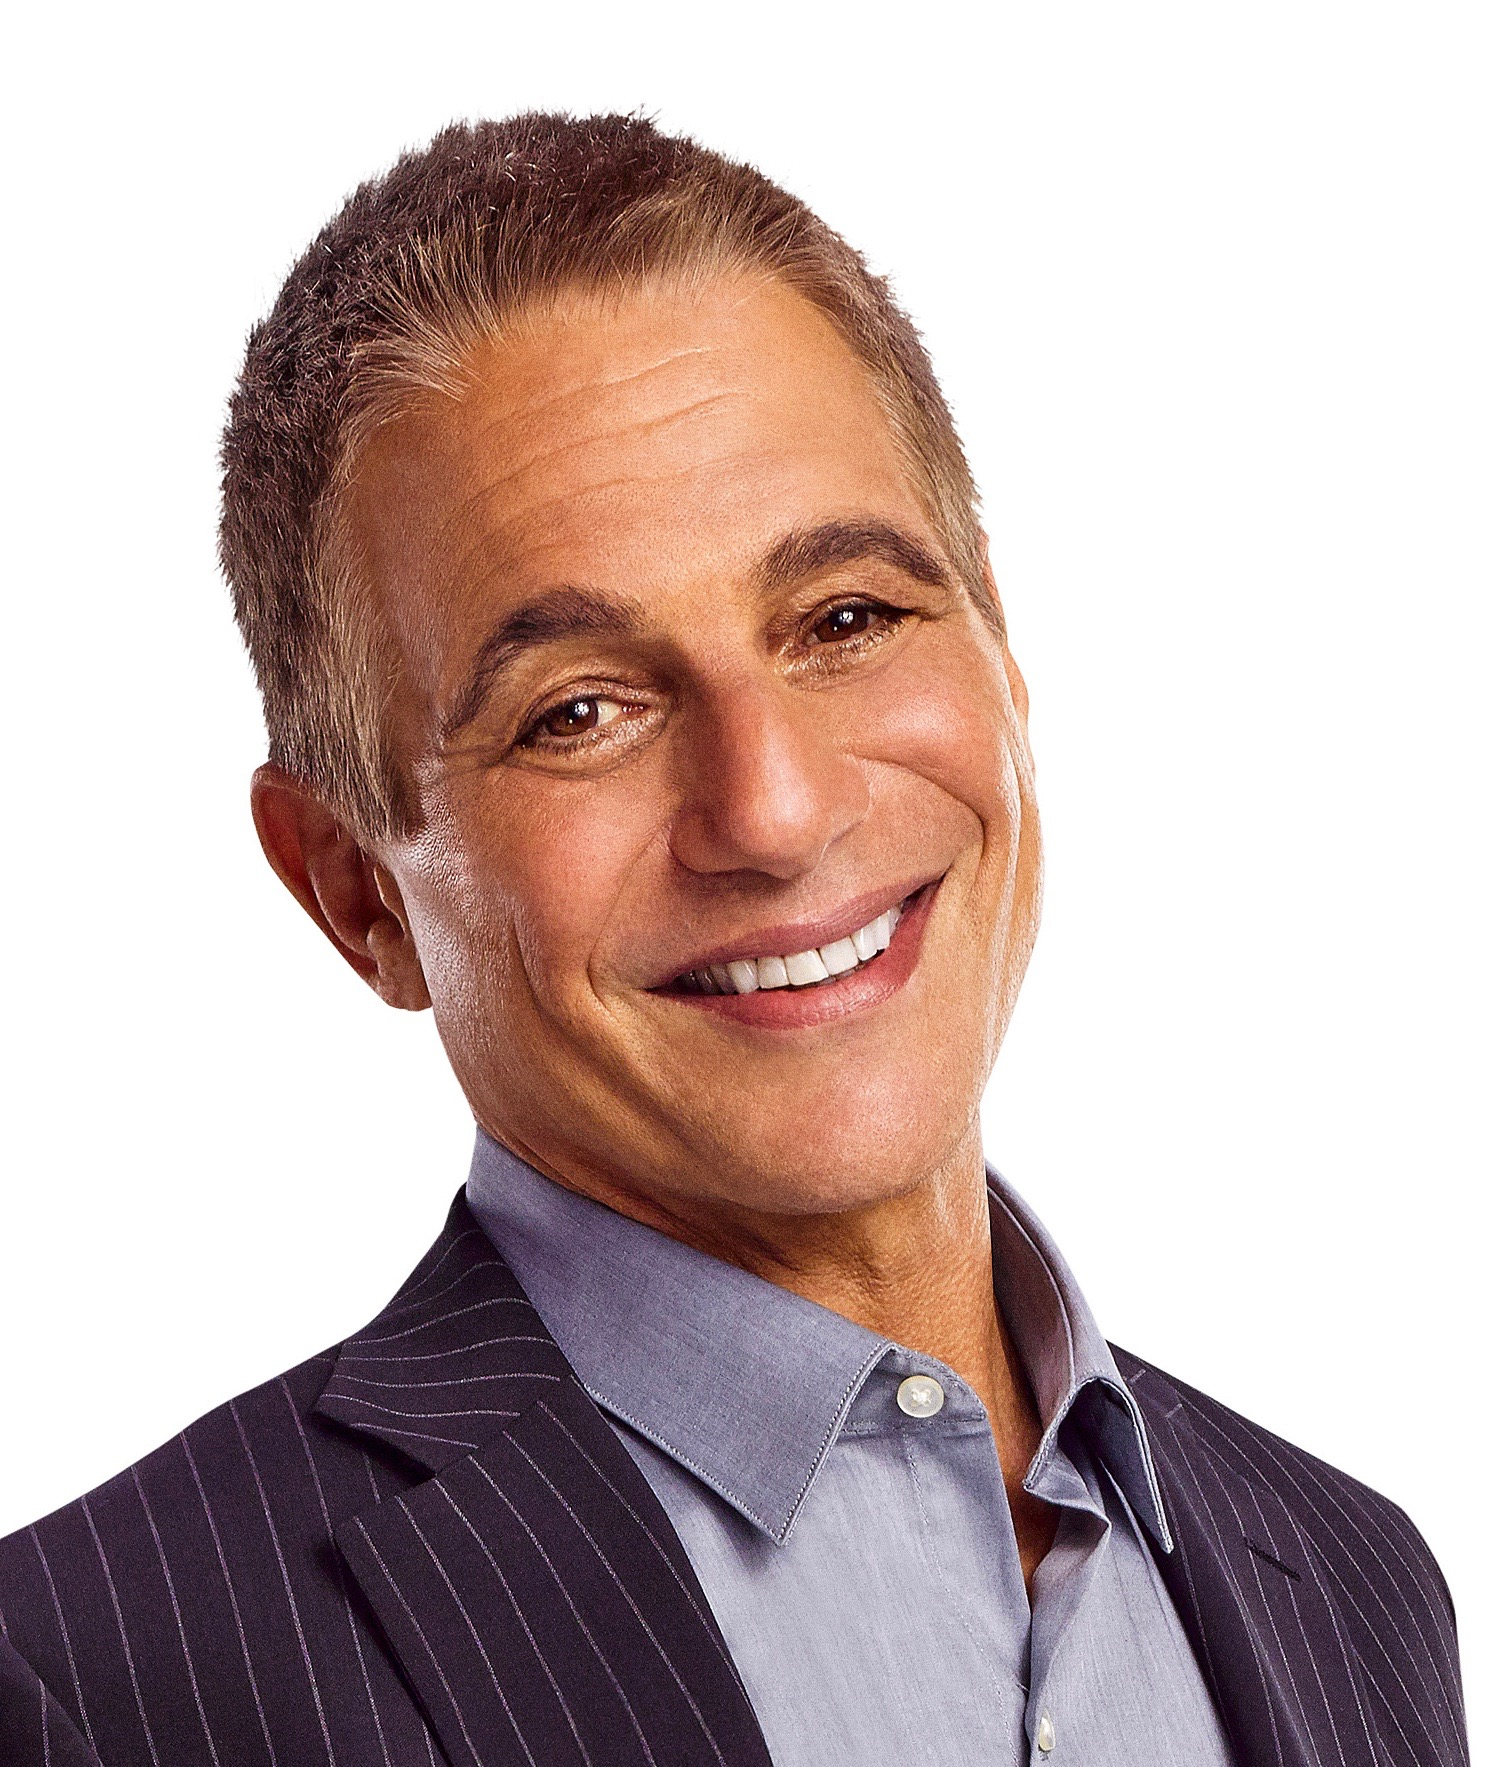 Tony Danza's Standards & Stories tickets available in New York!